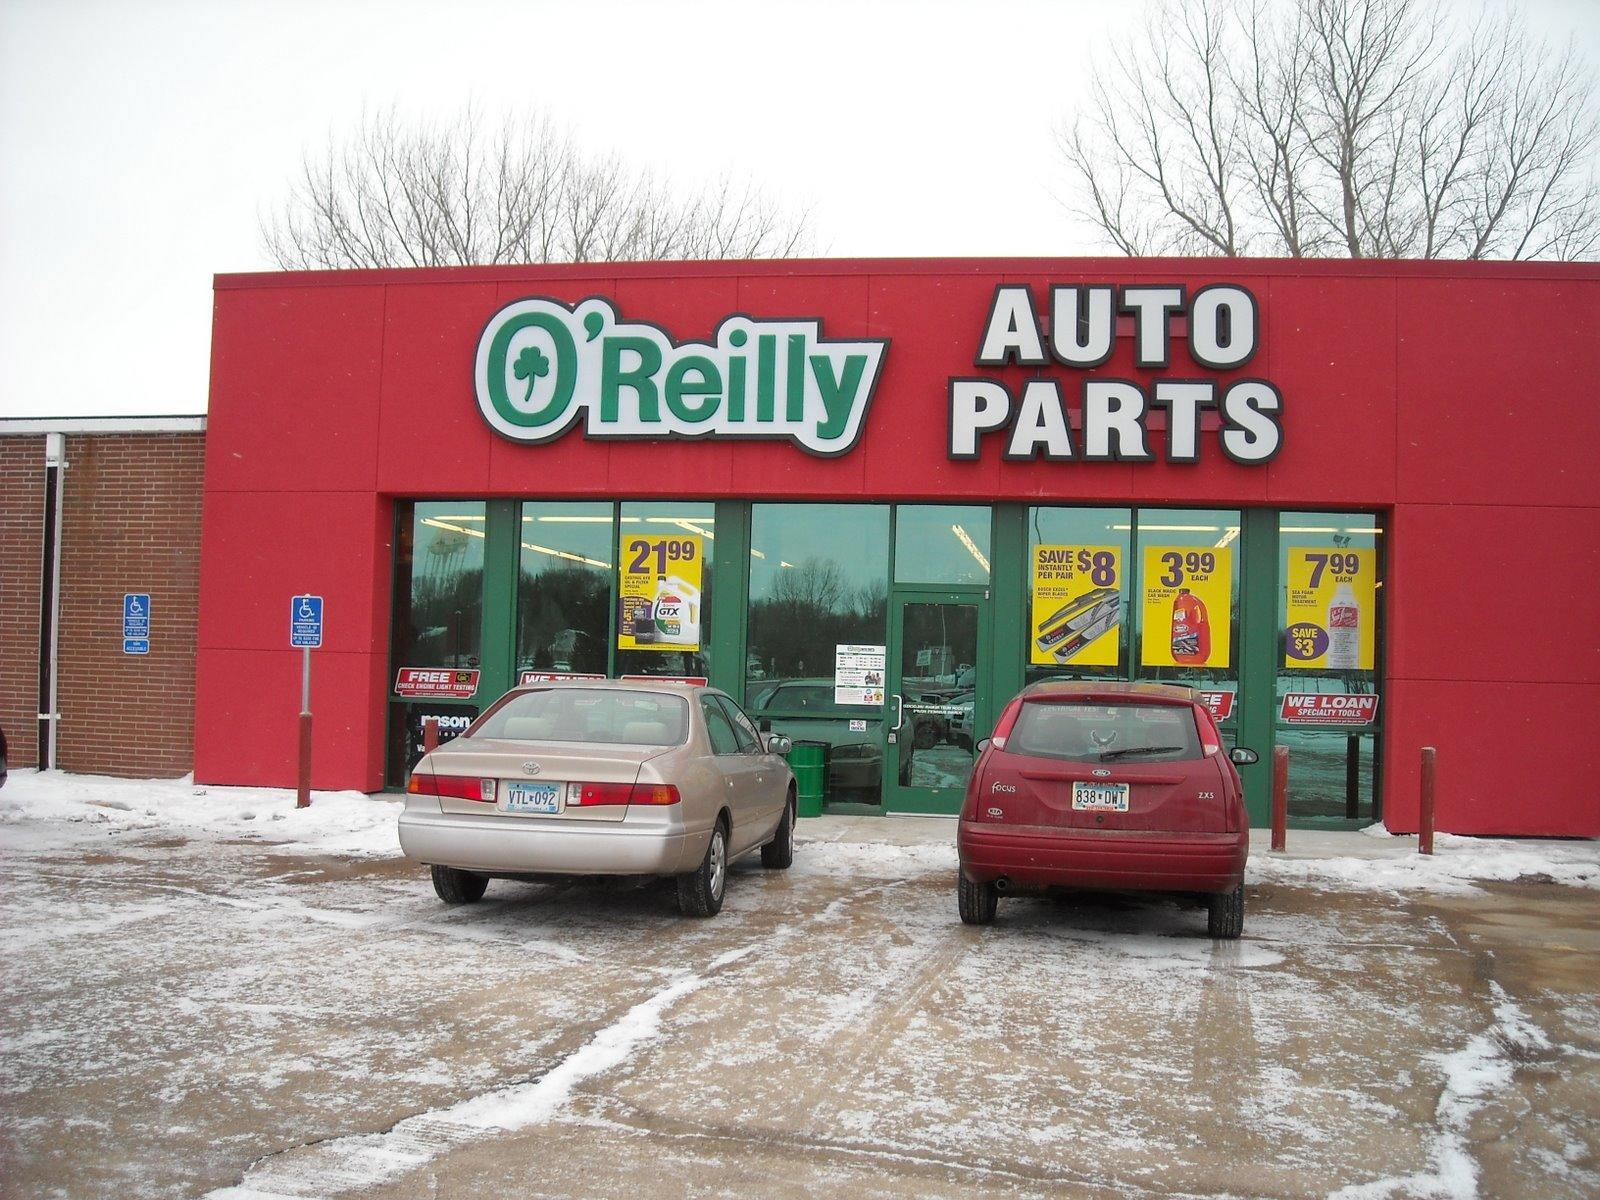 Domestic and import auto parts warehouse cemedomino.mlent Service· Low Prices· day Return Policy· Large SelectionShop popular models: Chevrolet Silverado Parts, Dodge Dakota Parts and more.